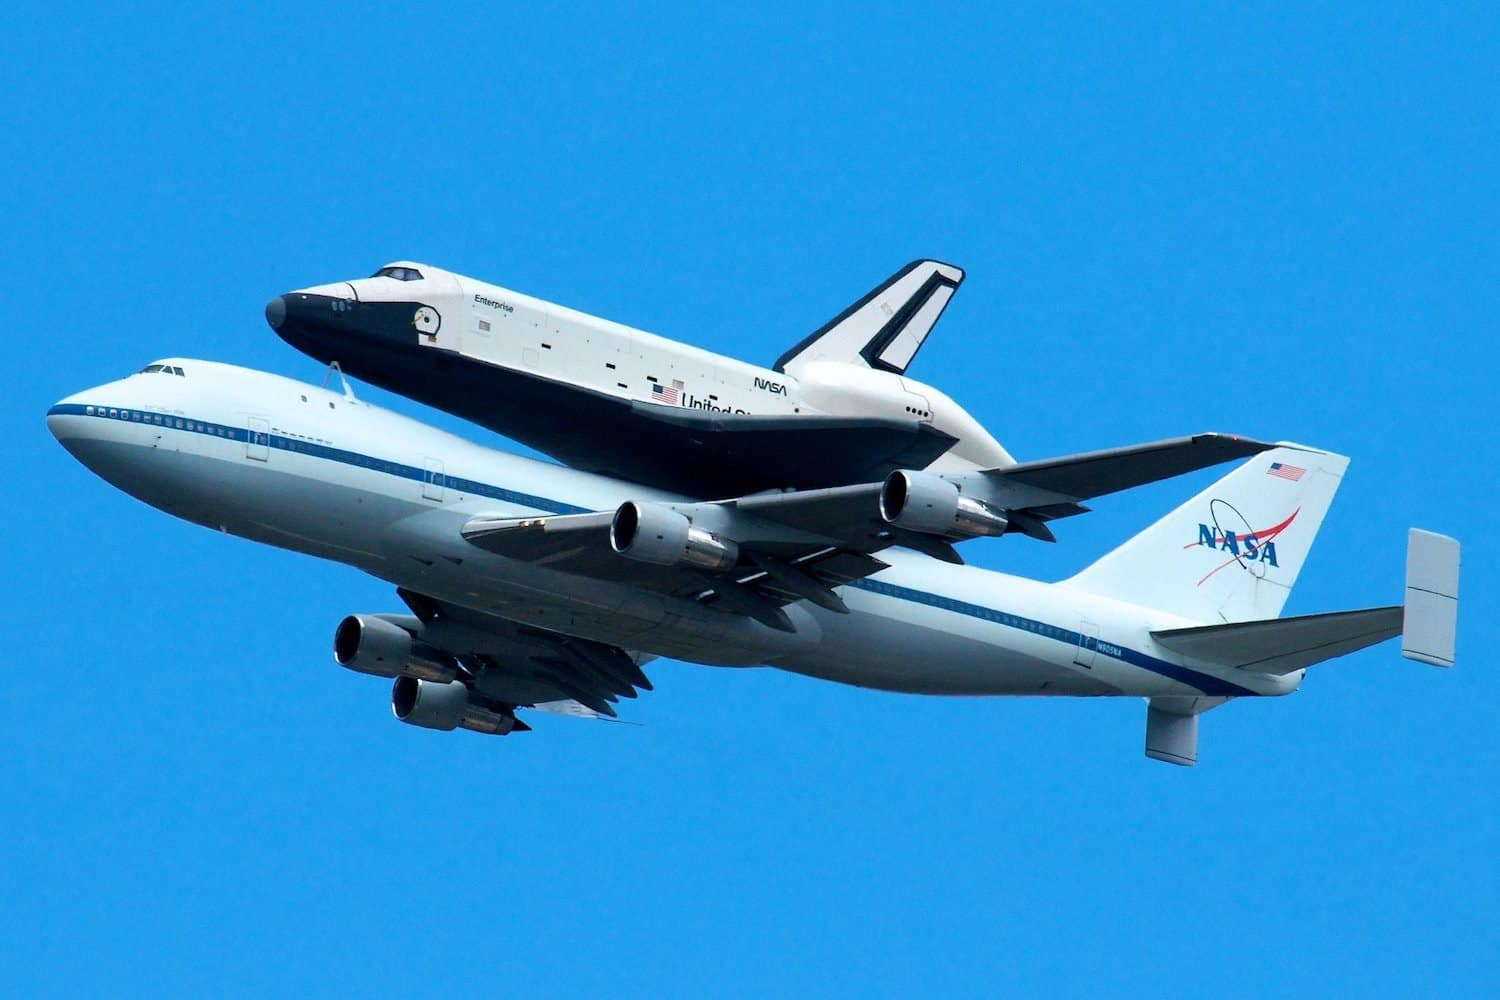 Space Shuttle Enterprise in Flight - Chris Ptacek via Flickr